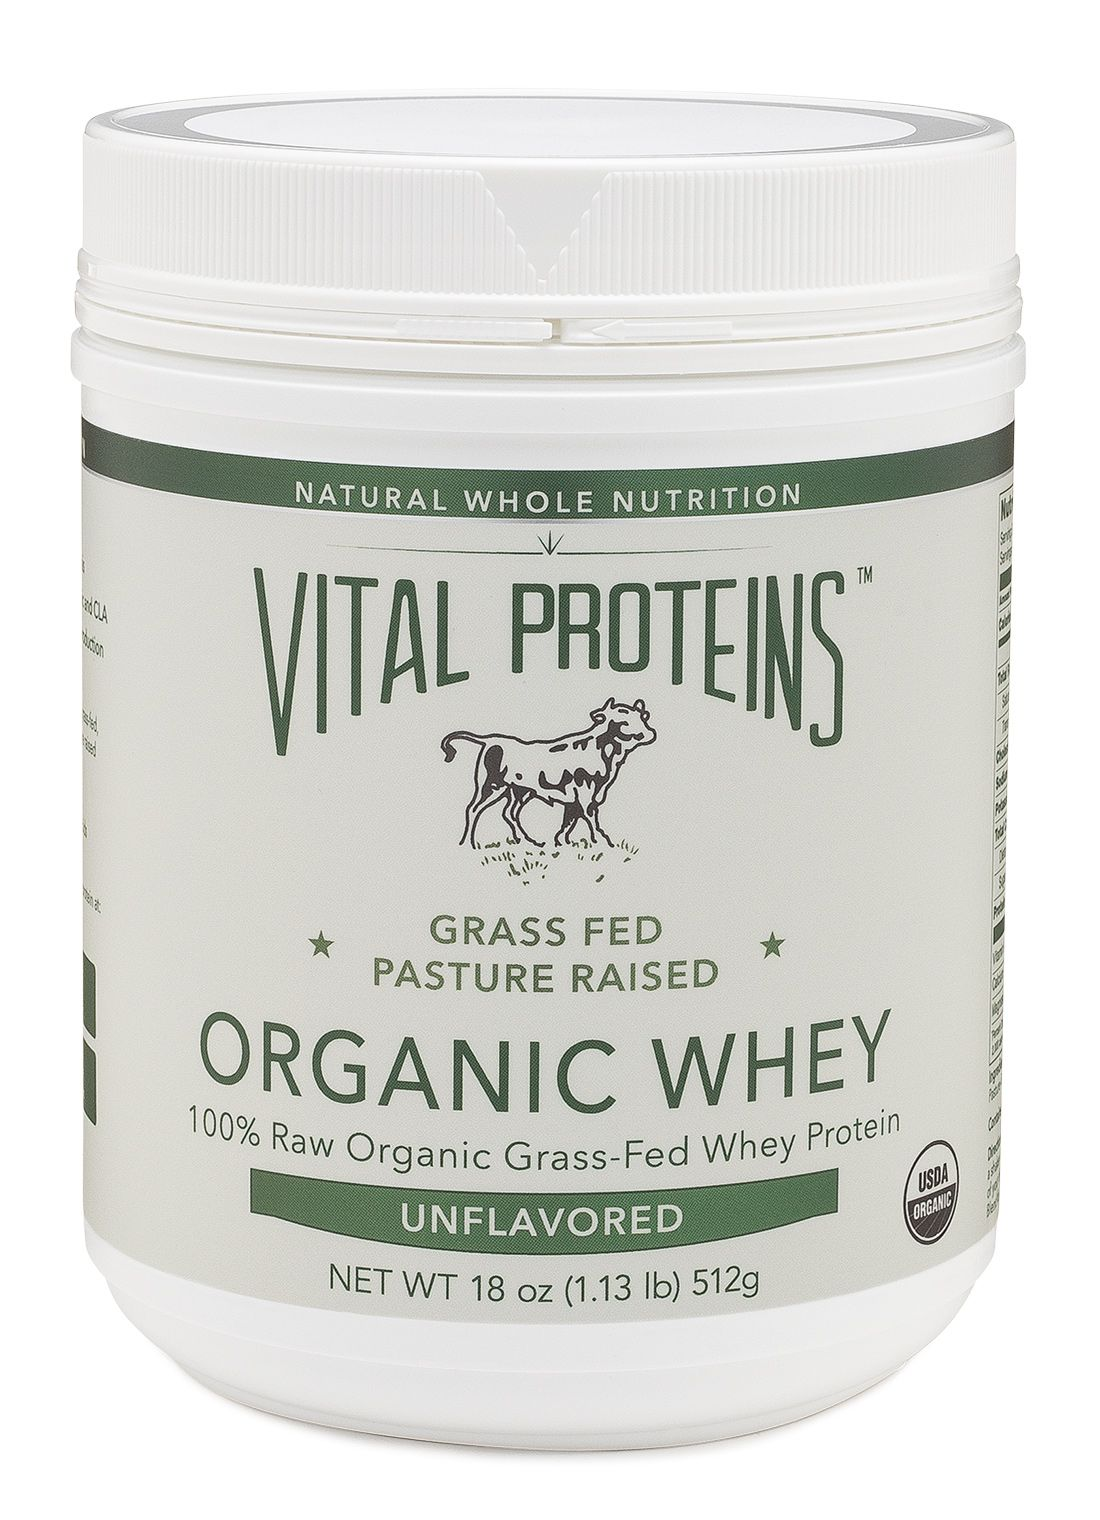 Organic Whey Protein Unflavored Grass Fed Whey Protein Organic Whey Protein Organic Grass